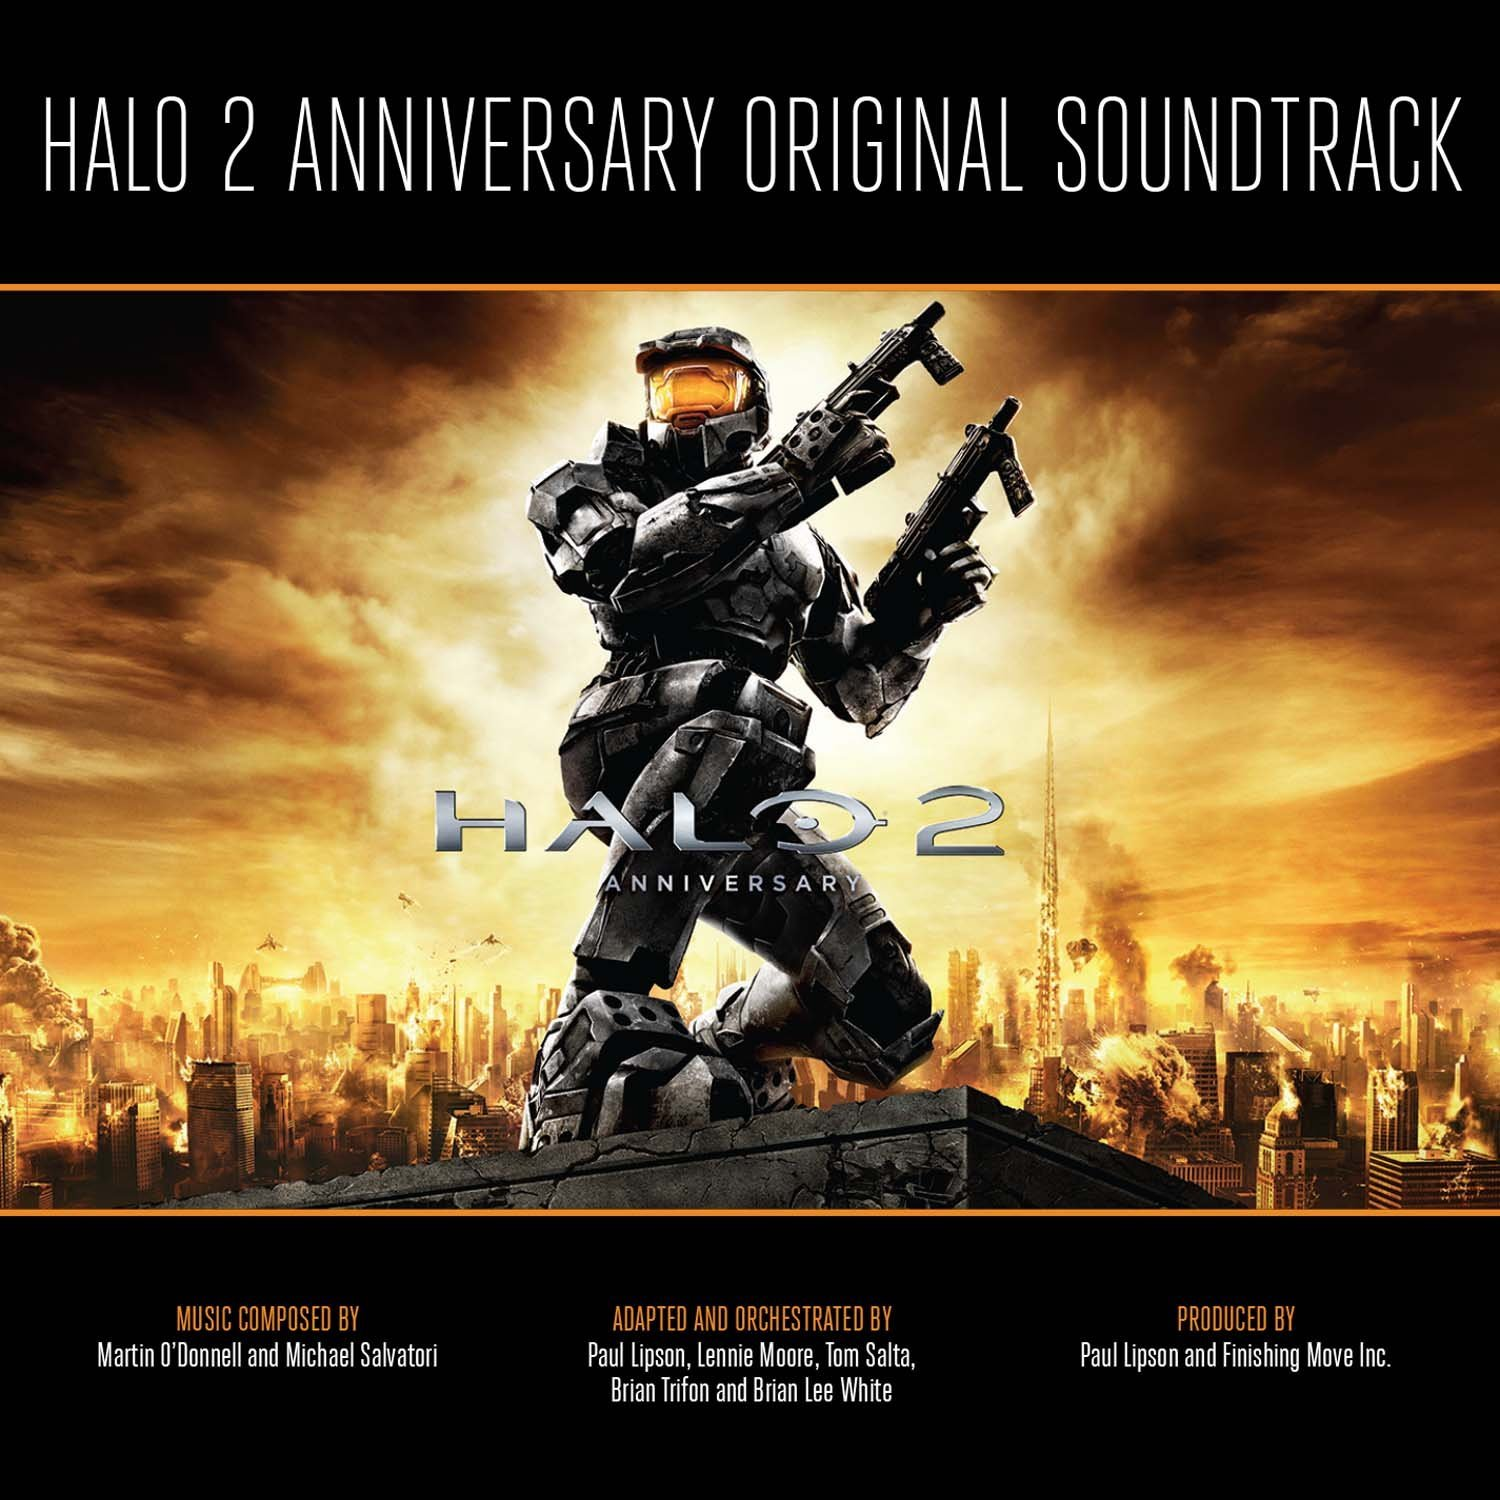 Halo 2 Anniversary Soundtrack